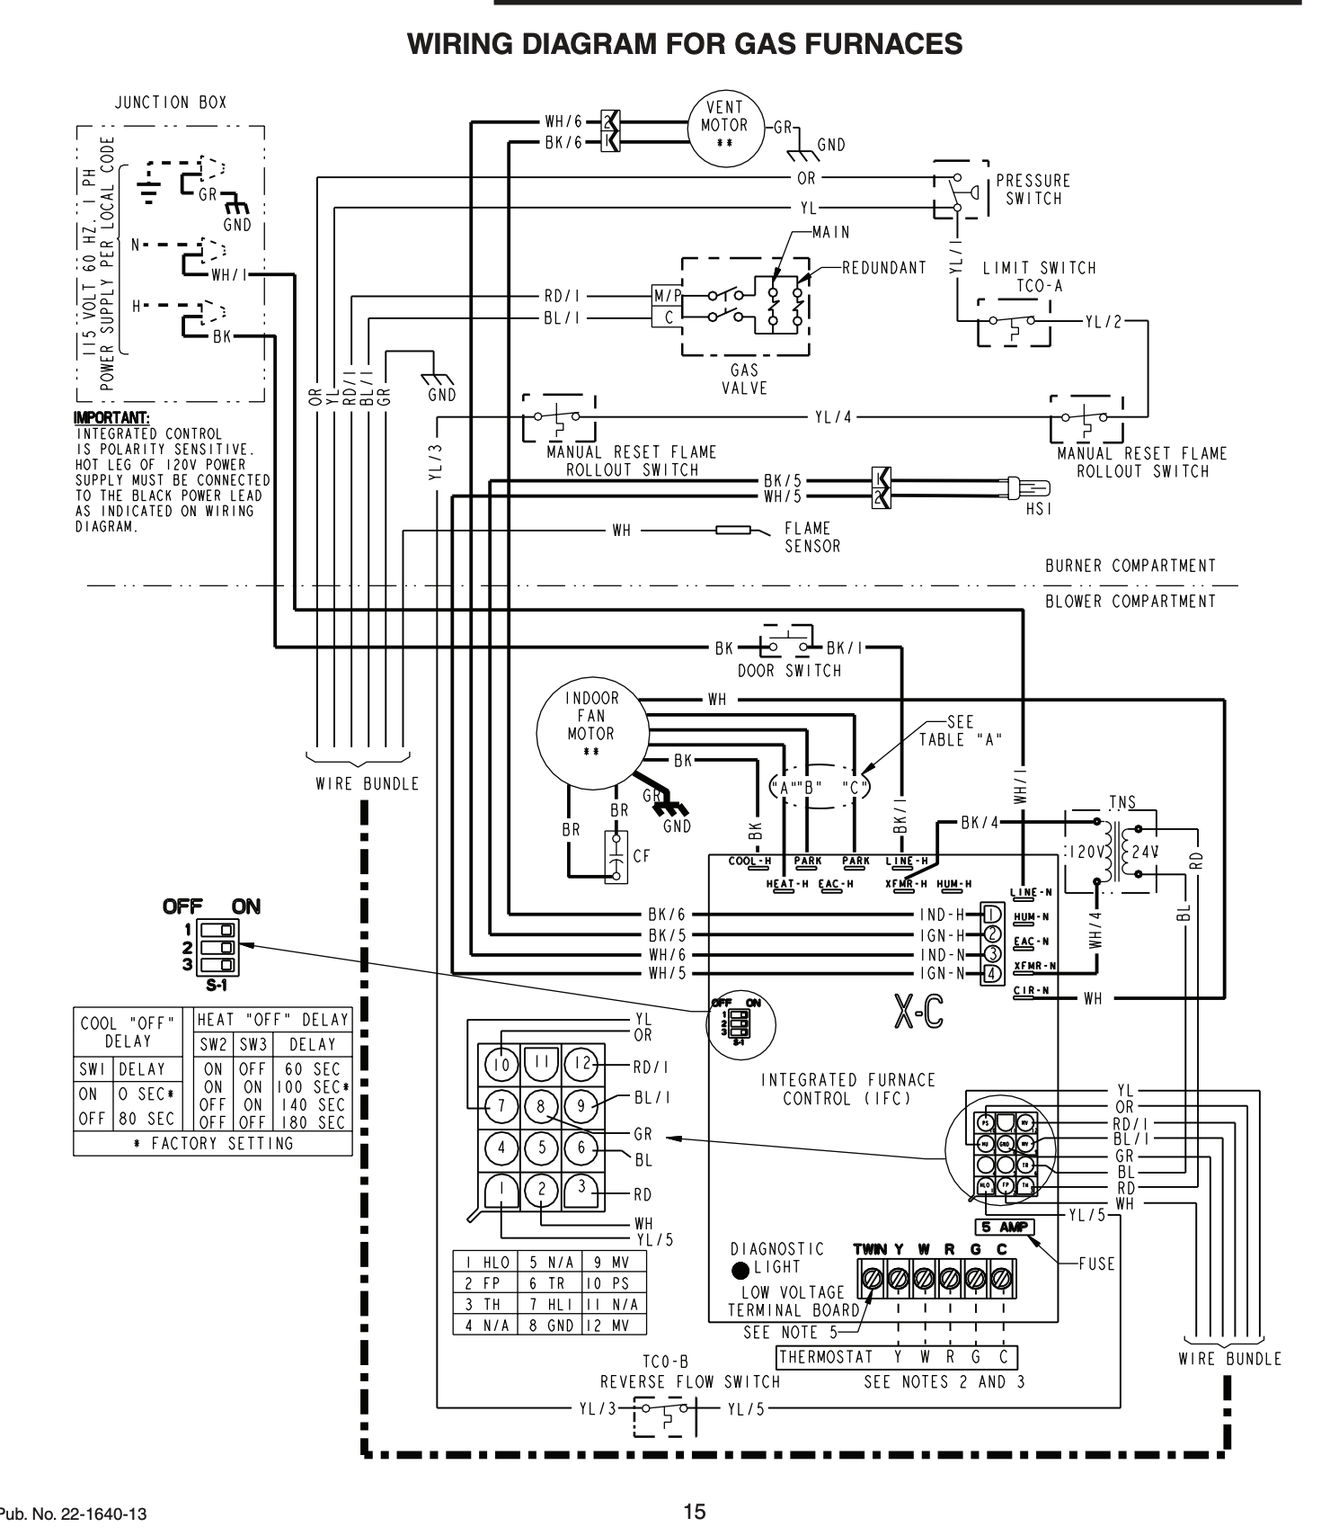 Fan & Limit Switch Q&A-5 Furnace fan limit control troubleshootingInspectAPedia.com